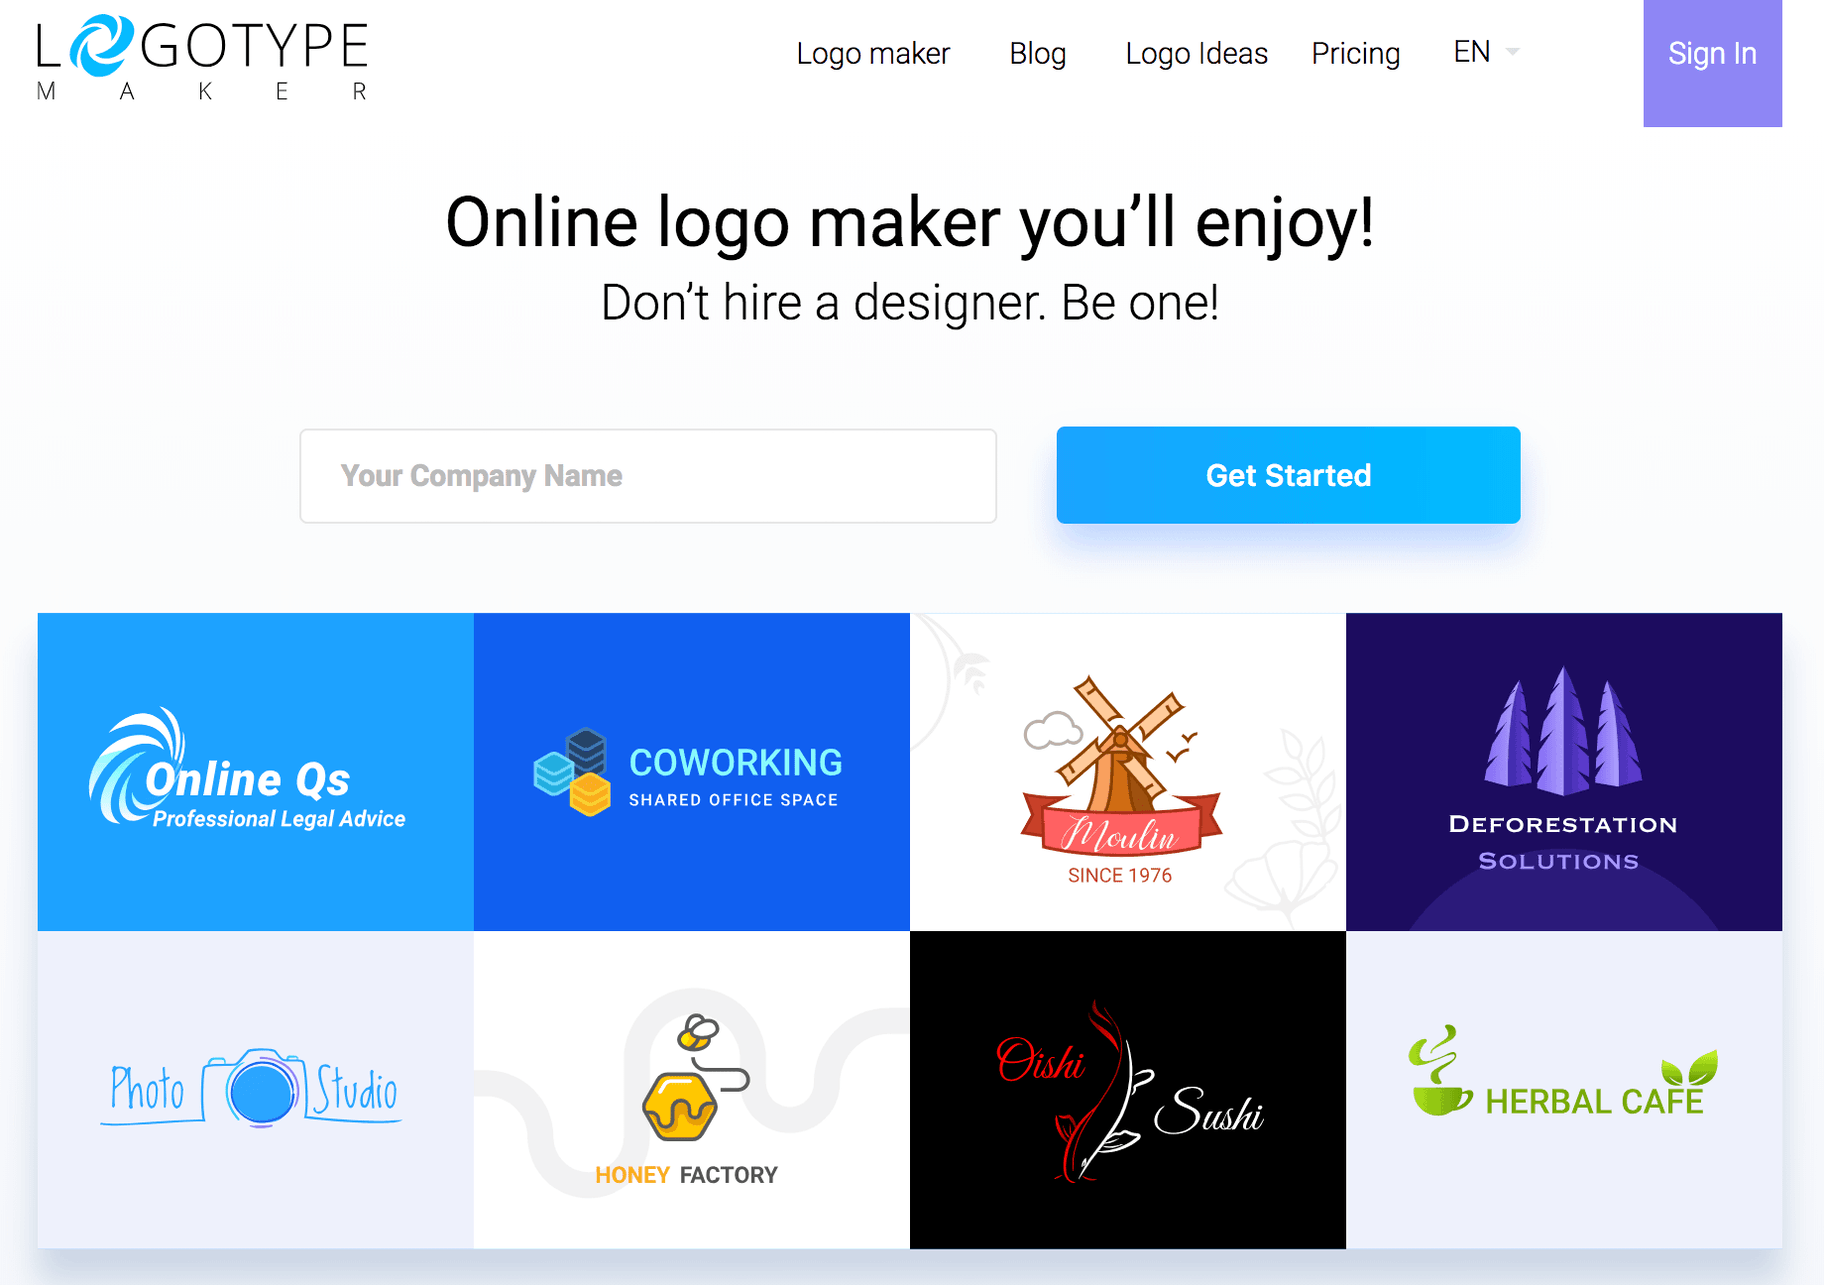 Logotype Maker: Logo Design Software